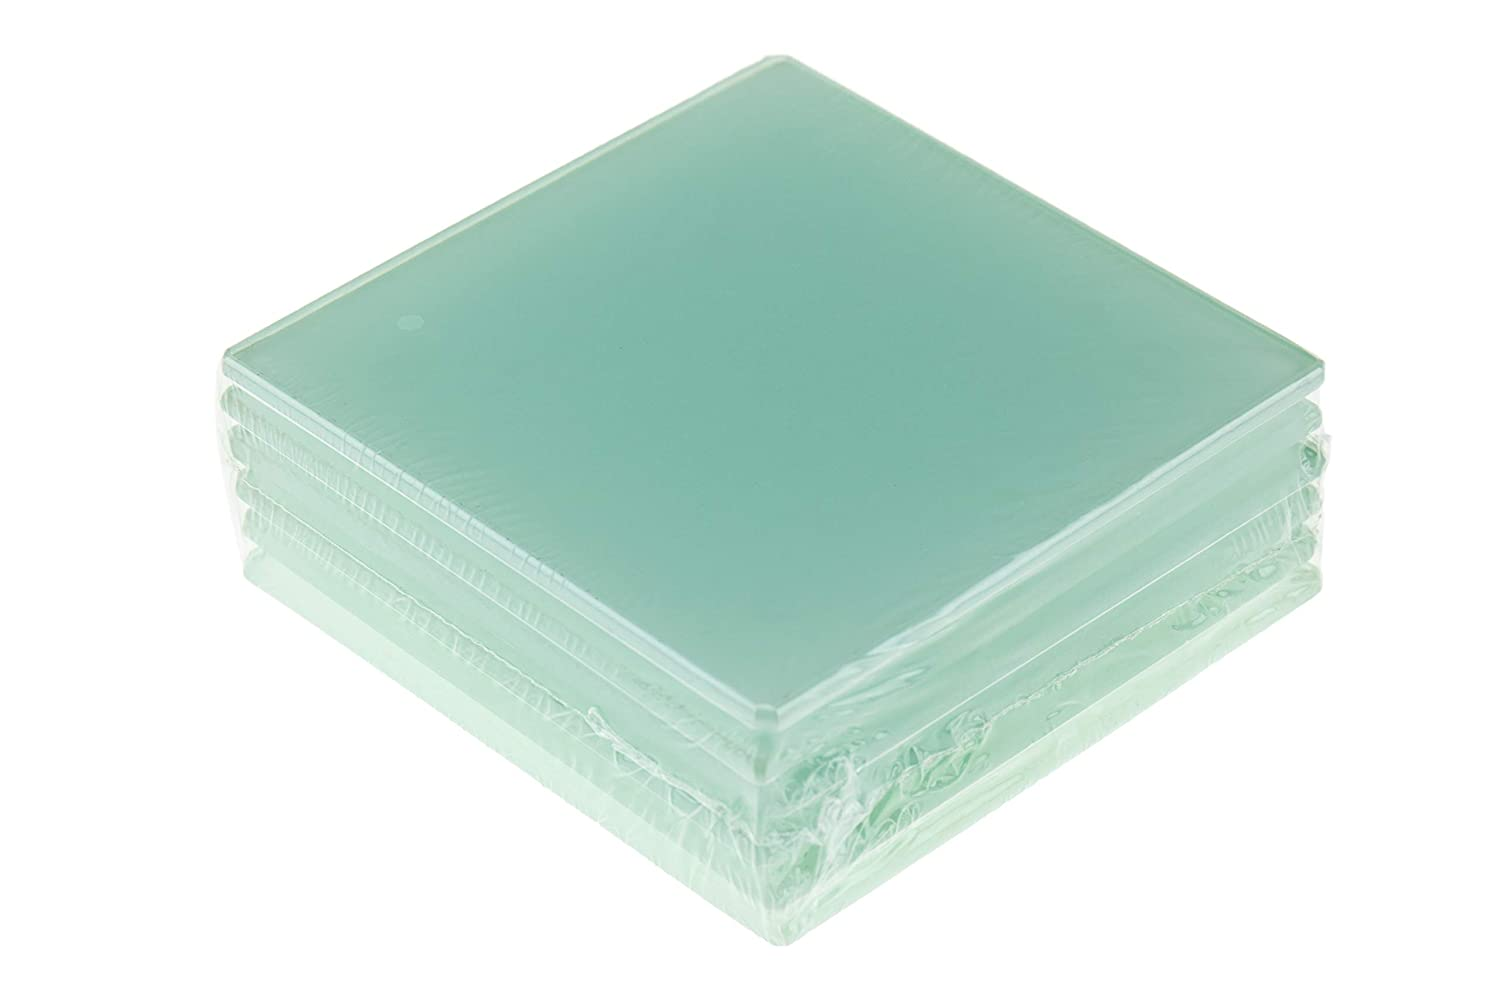 Clear Clever Chef Non Slip Durable Shockproof Square Glass Coaster 01